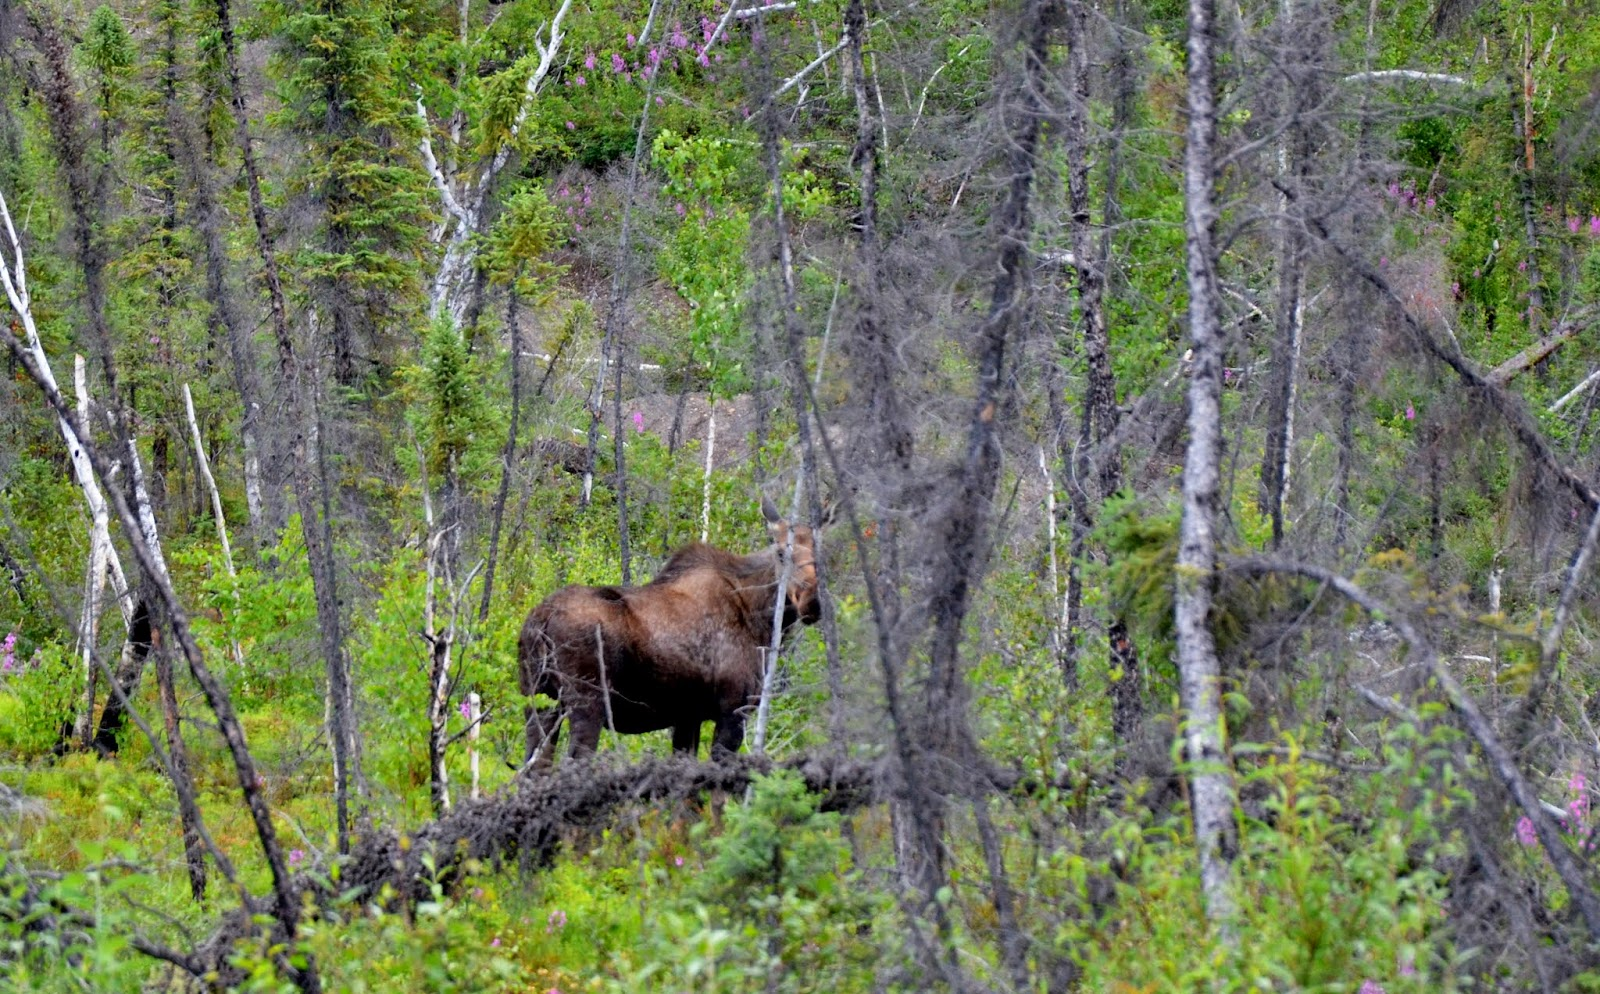 Moose in the bush.